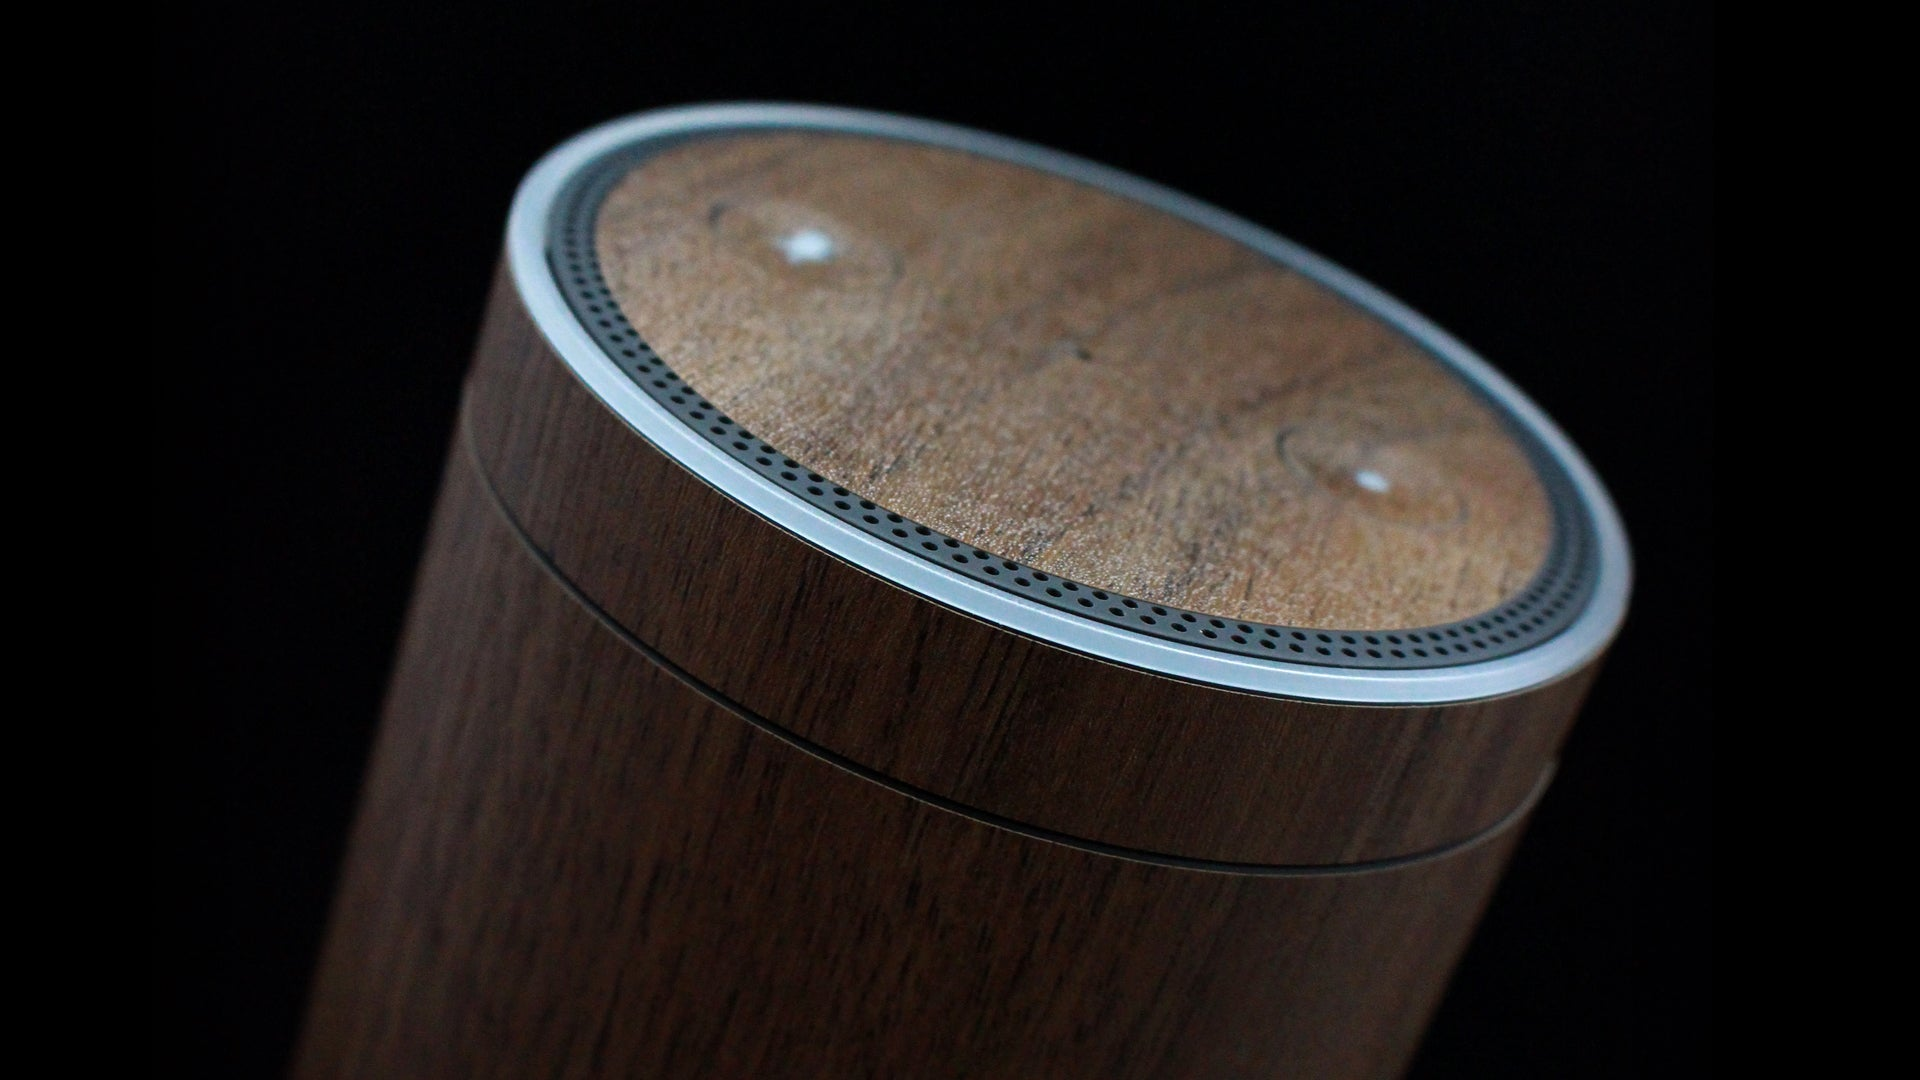 Amazon Echo Dark Oak Wood Skins